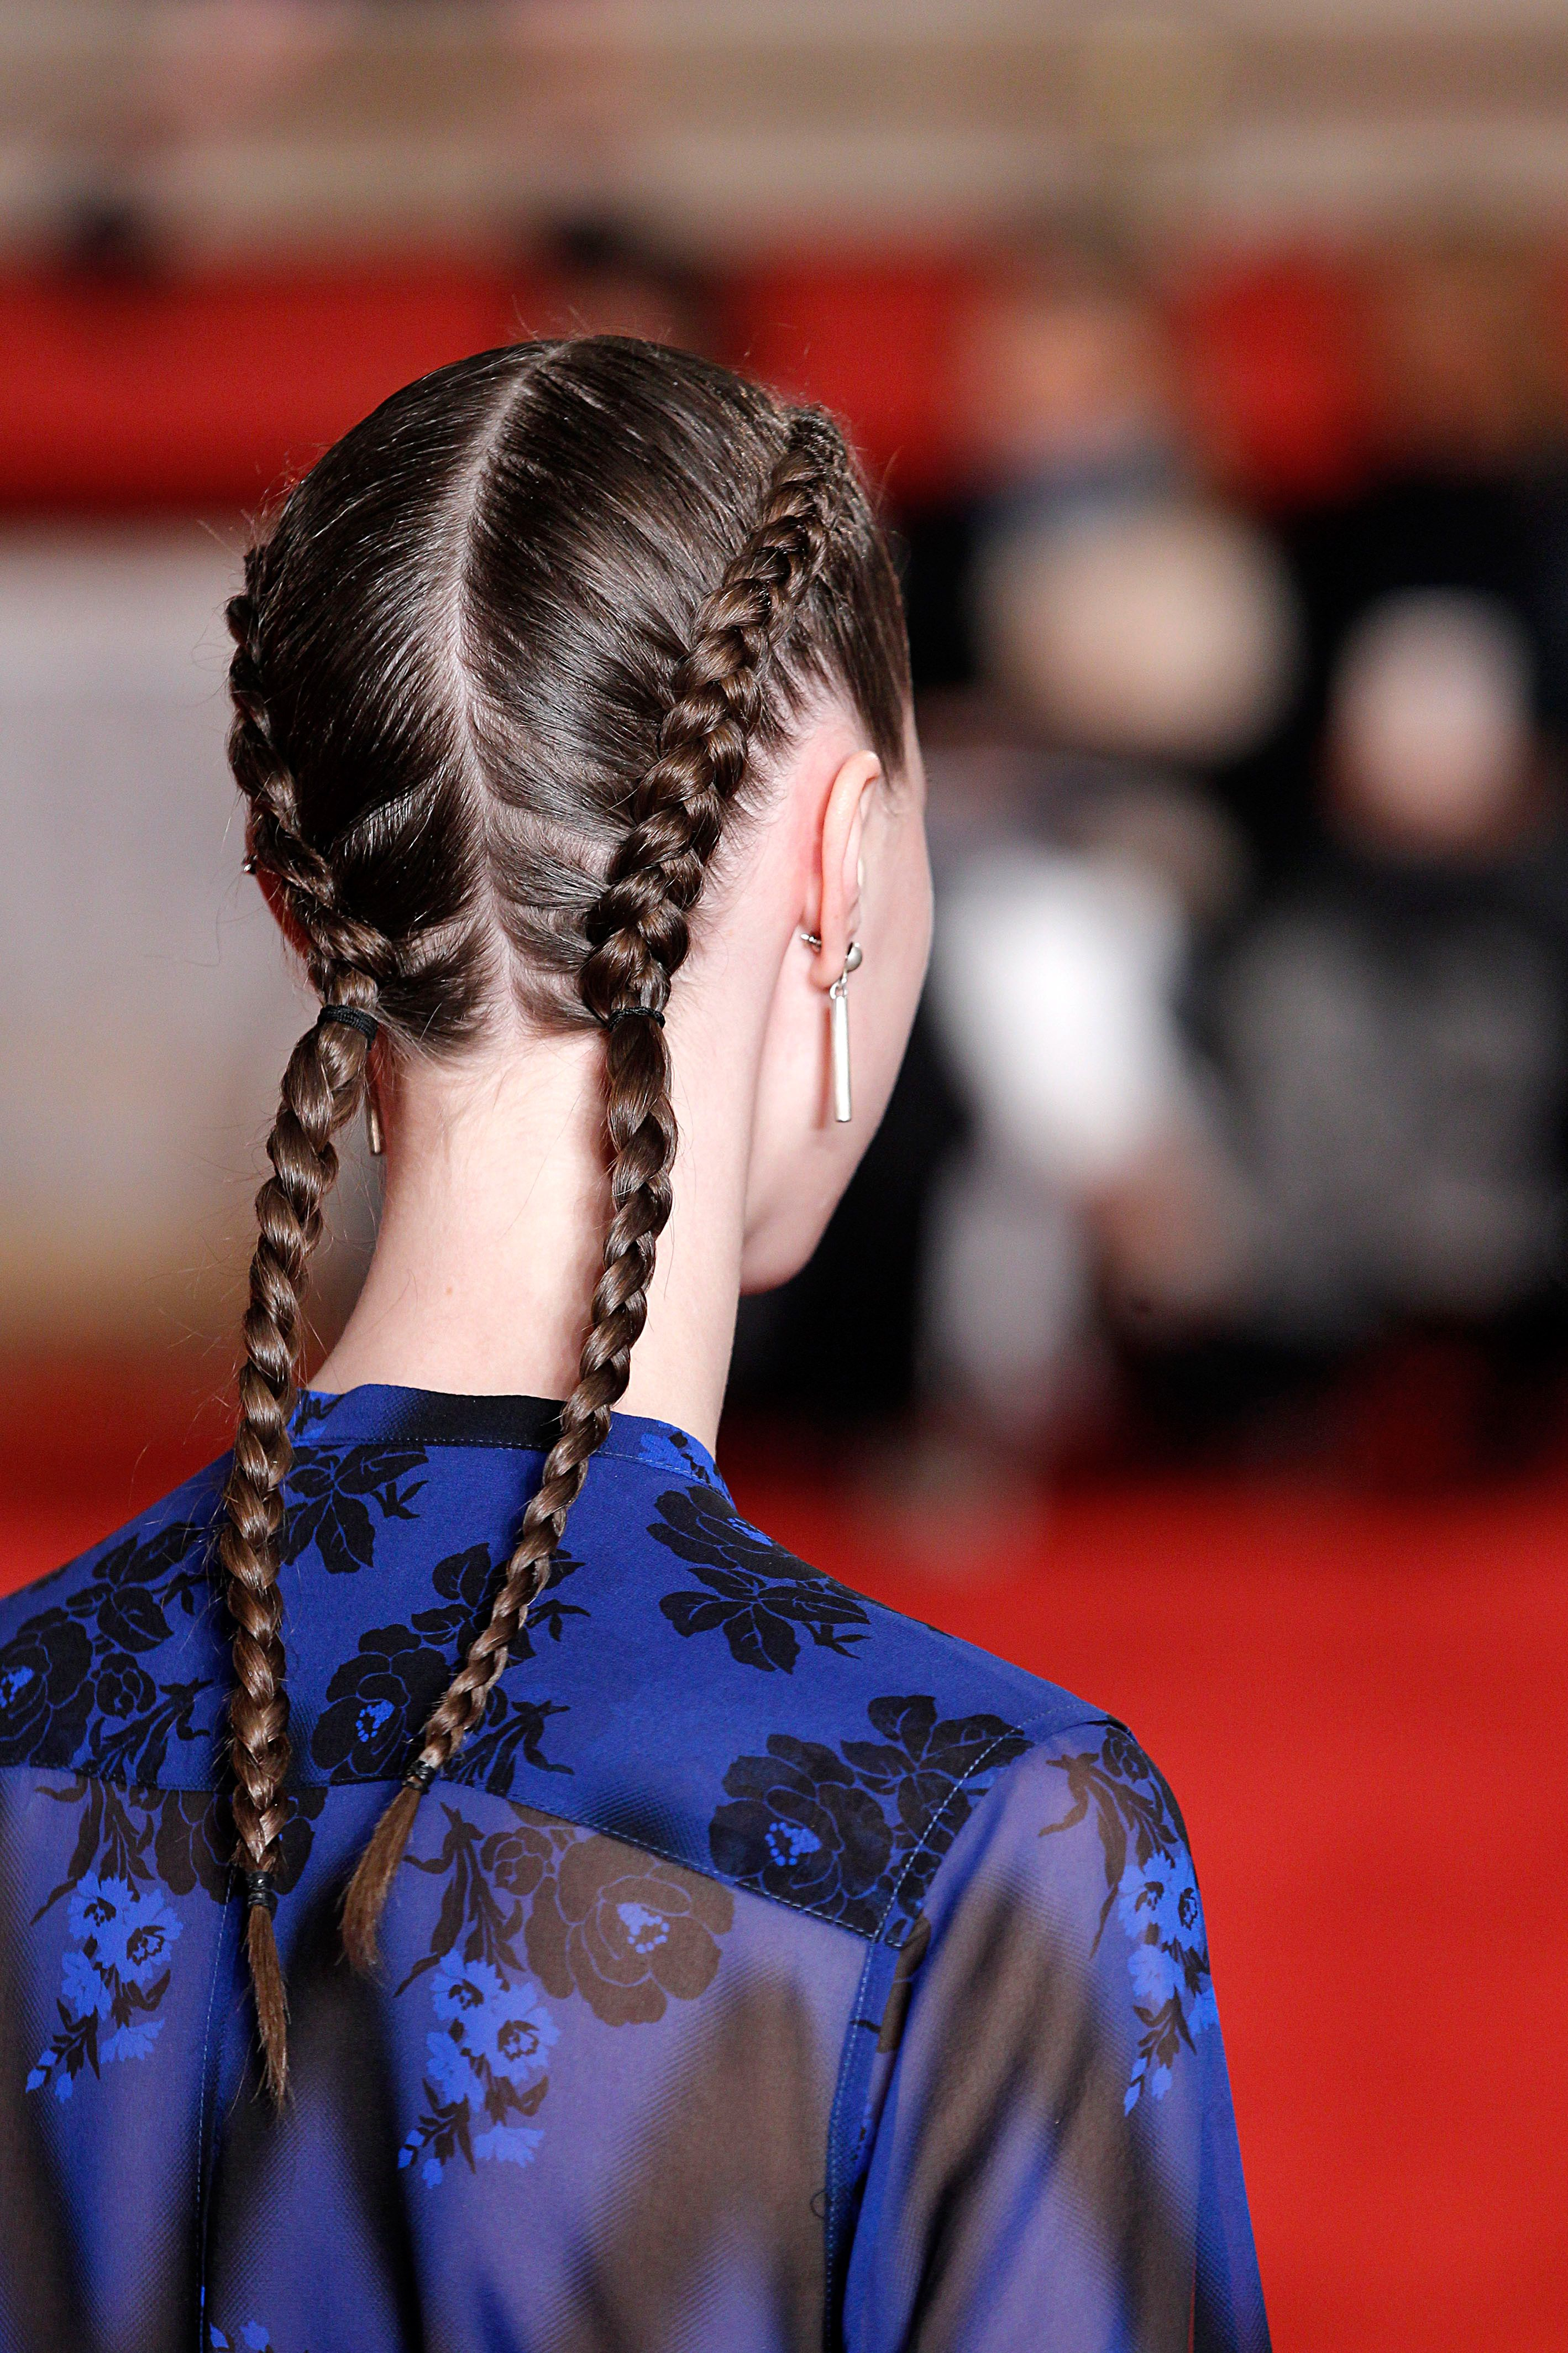 "<p>""Wet hair has about 50 percent more elasticity than dry hair,"" Lawless says. That's why you can get such a clean braid on damp hair. But all that tugging to get your boxer braids extra tight means you're stretching hair out past the length it would be when it's dry. It then sets in that stretched-out position and never bounces back. Ditto if you use tight, pinching elastics on wet hair or pull it into a super-taut ponytail. Think of it like a permanently stretched rubber band that snaps. Cringe.</p>"